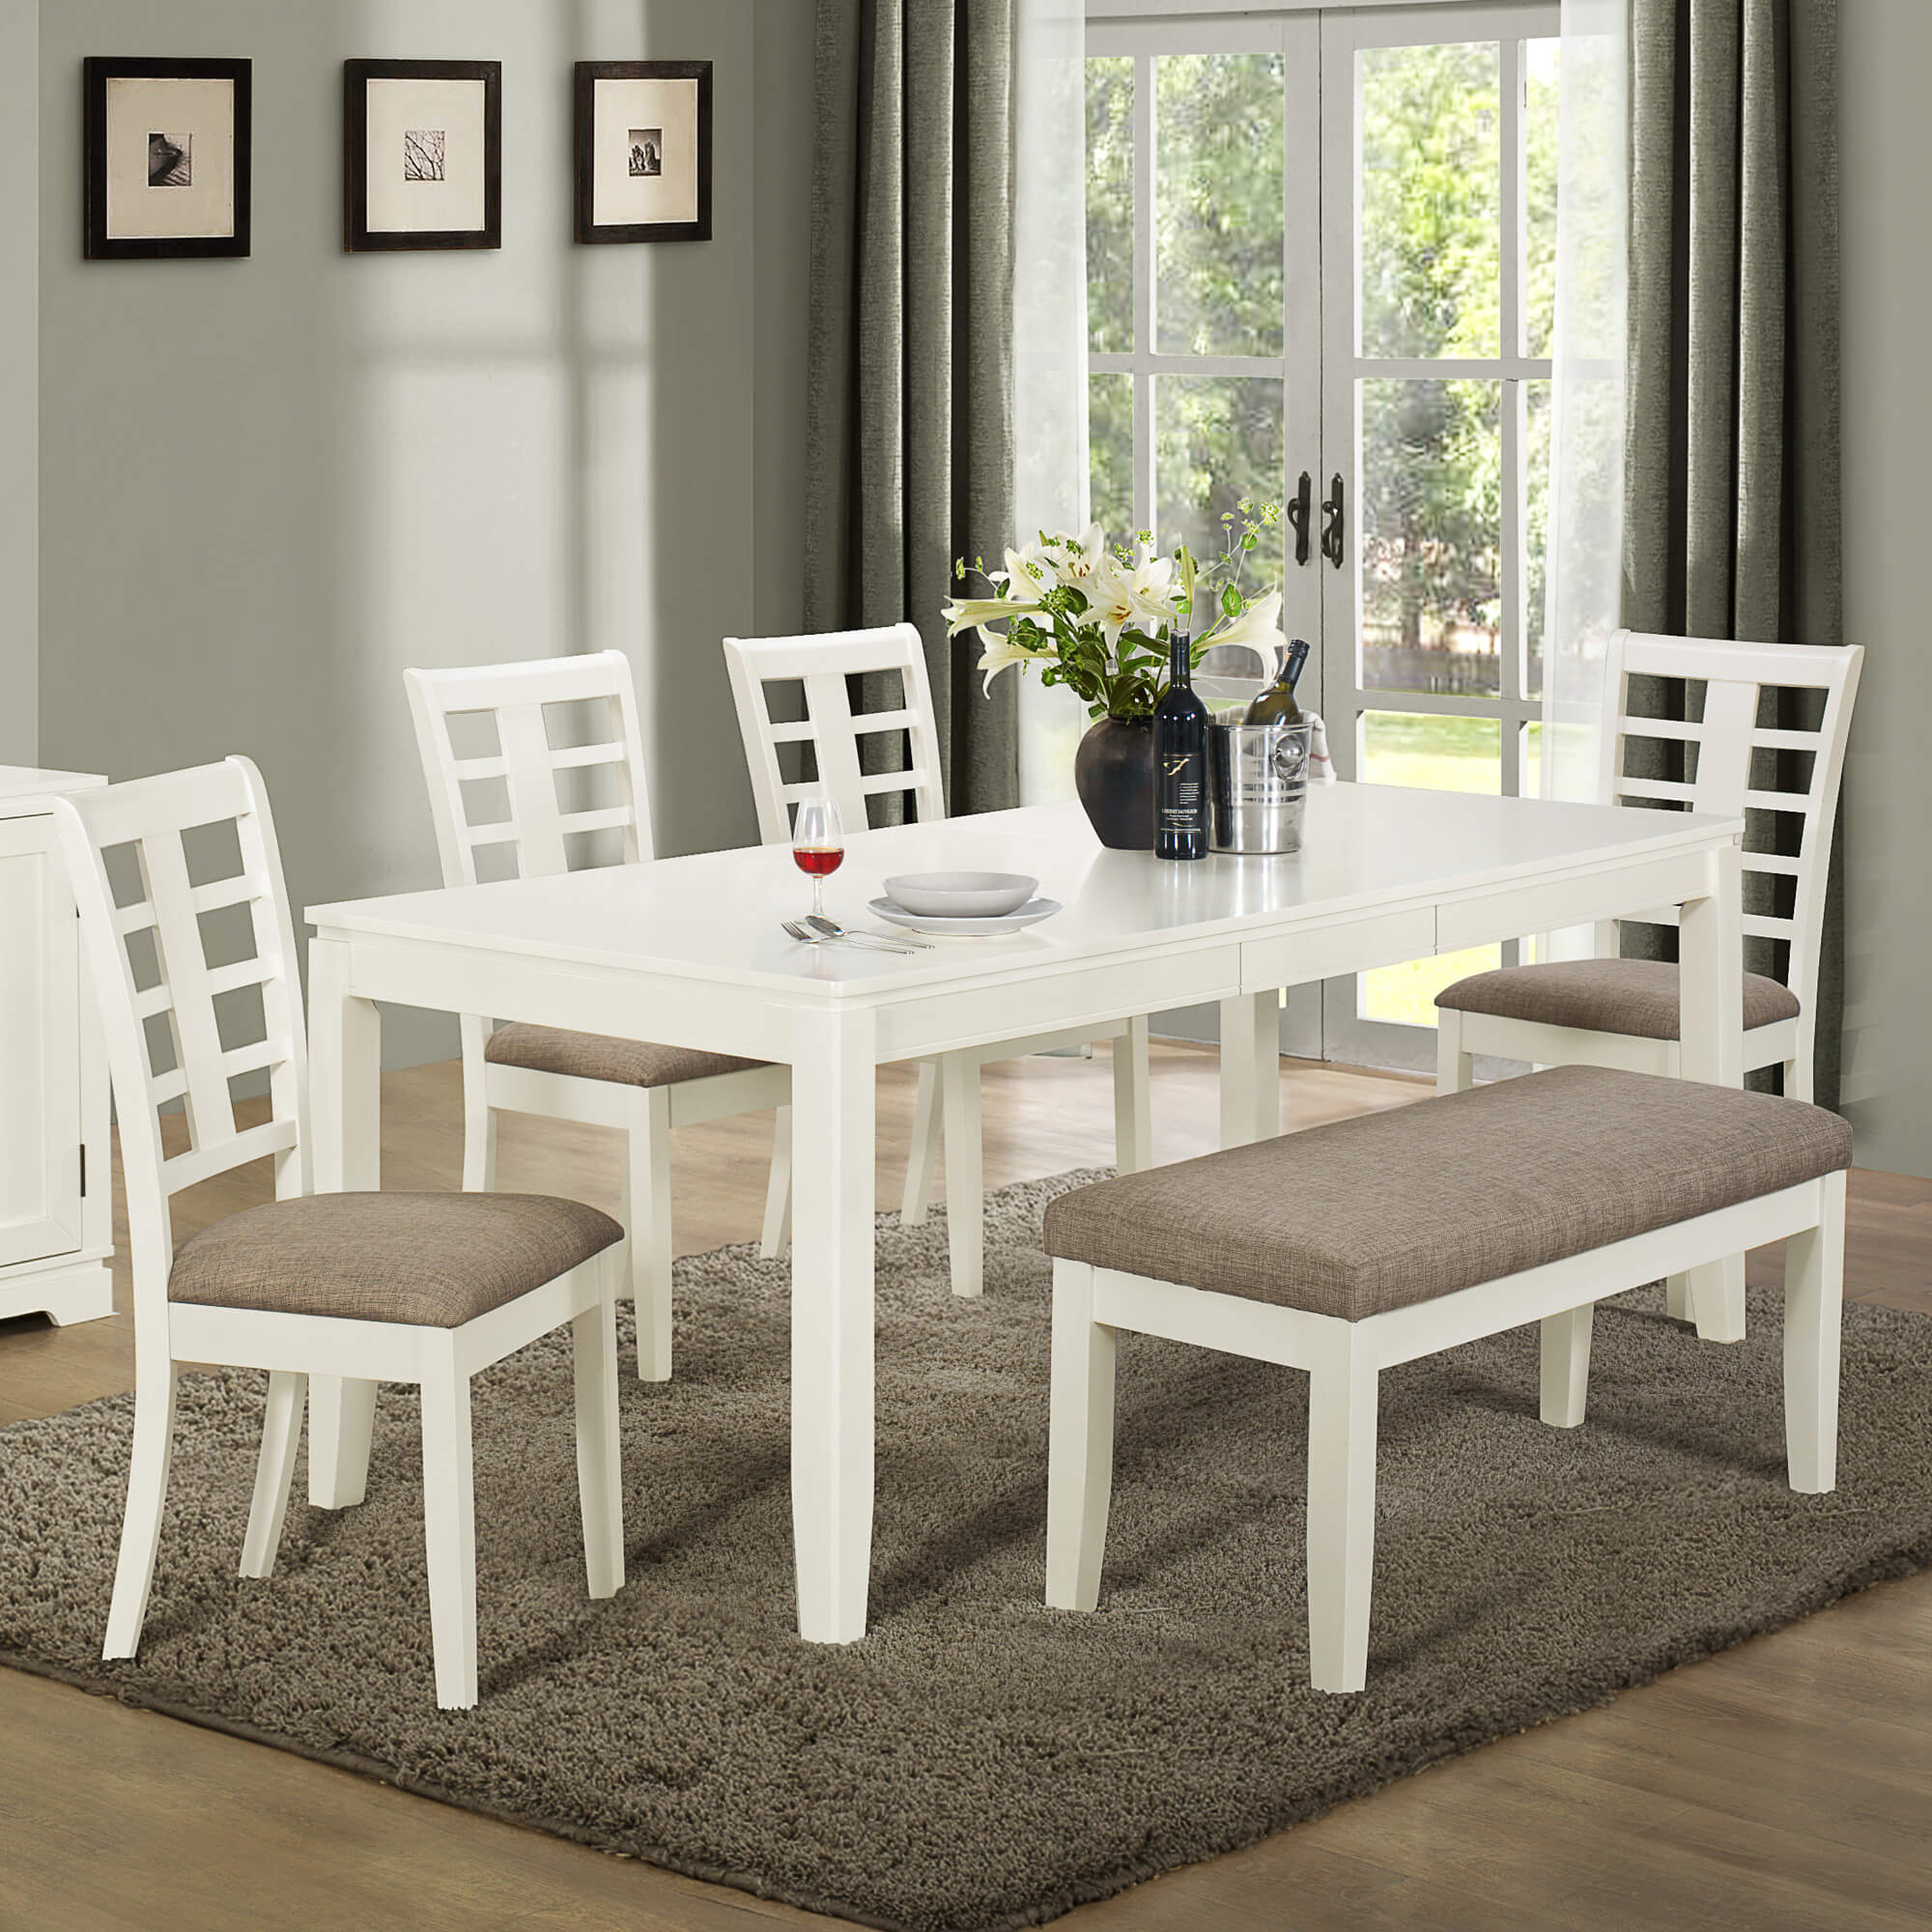 Built with solid wood and MDF board, this white and grey dining set with bench lightens up the dining space. As you can see it, works well with a grey centric dining room, but also works in a light and white rooms.